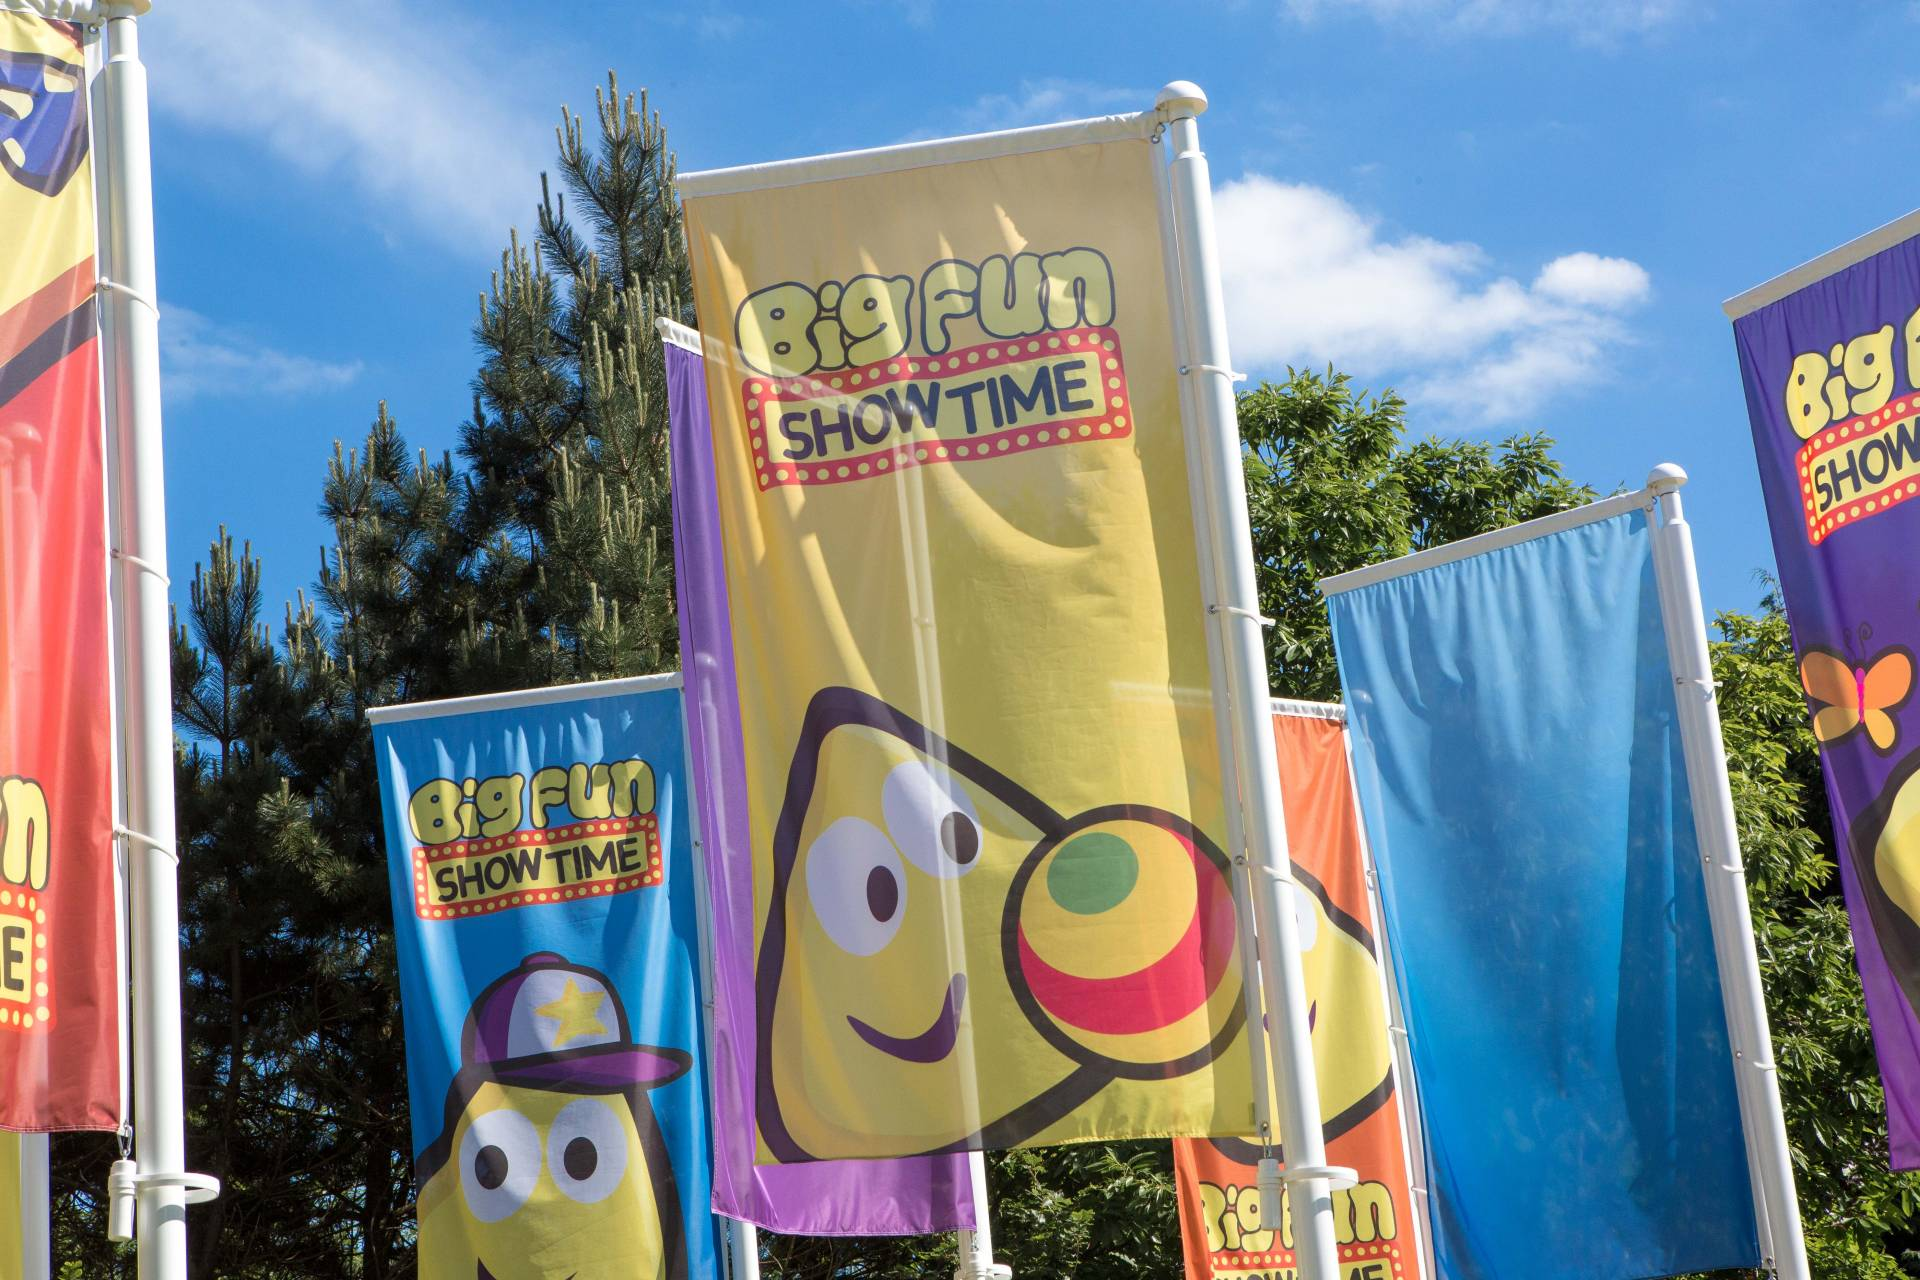 04 Bigfunshowtime Flags 1572880494 195.171.191.66